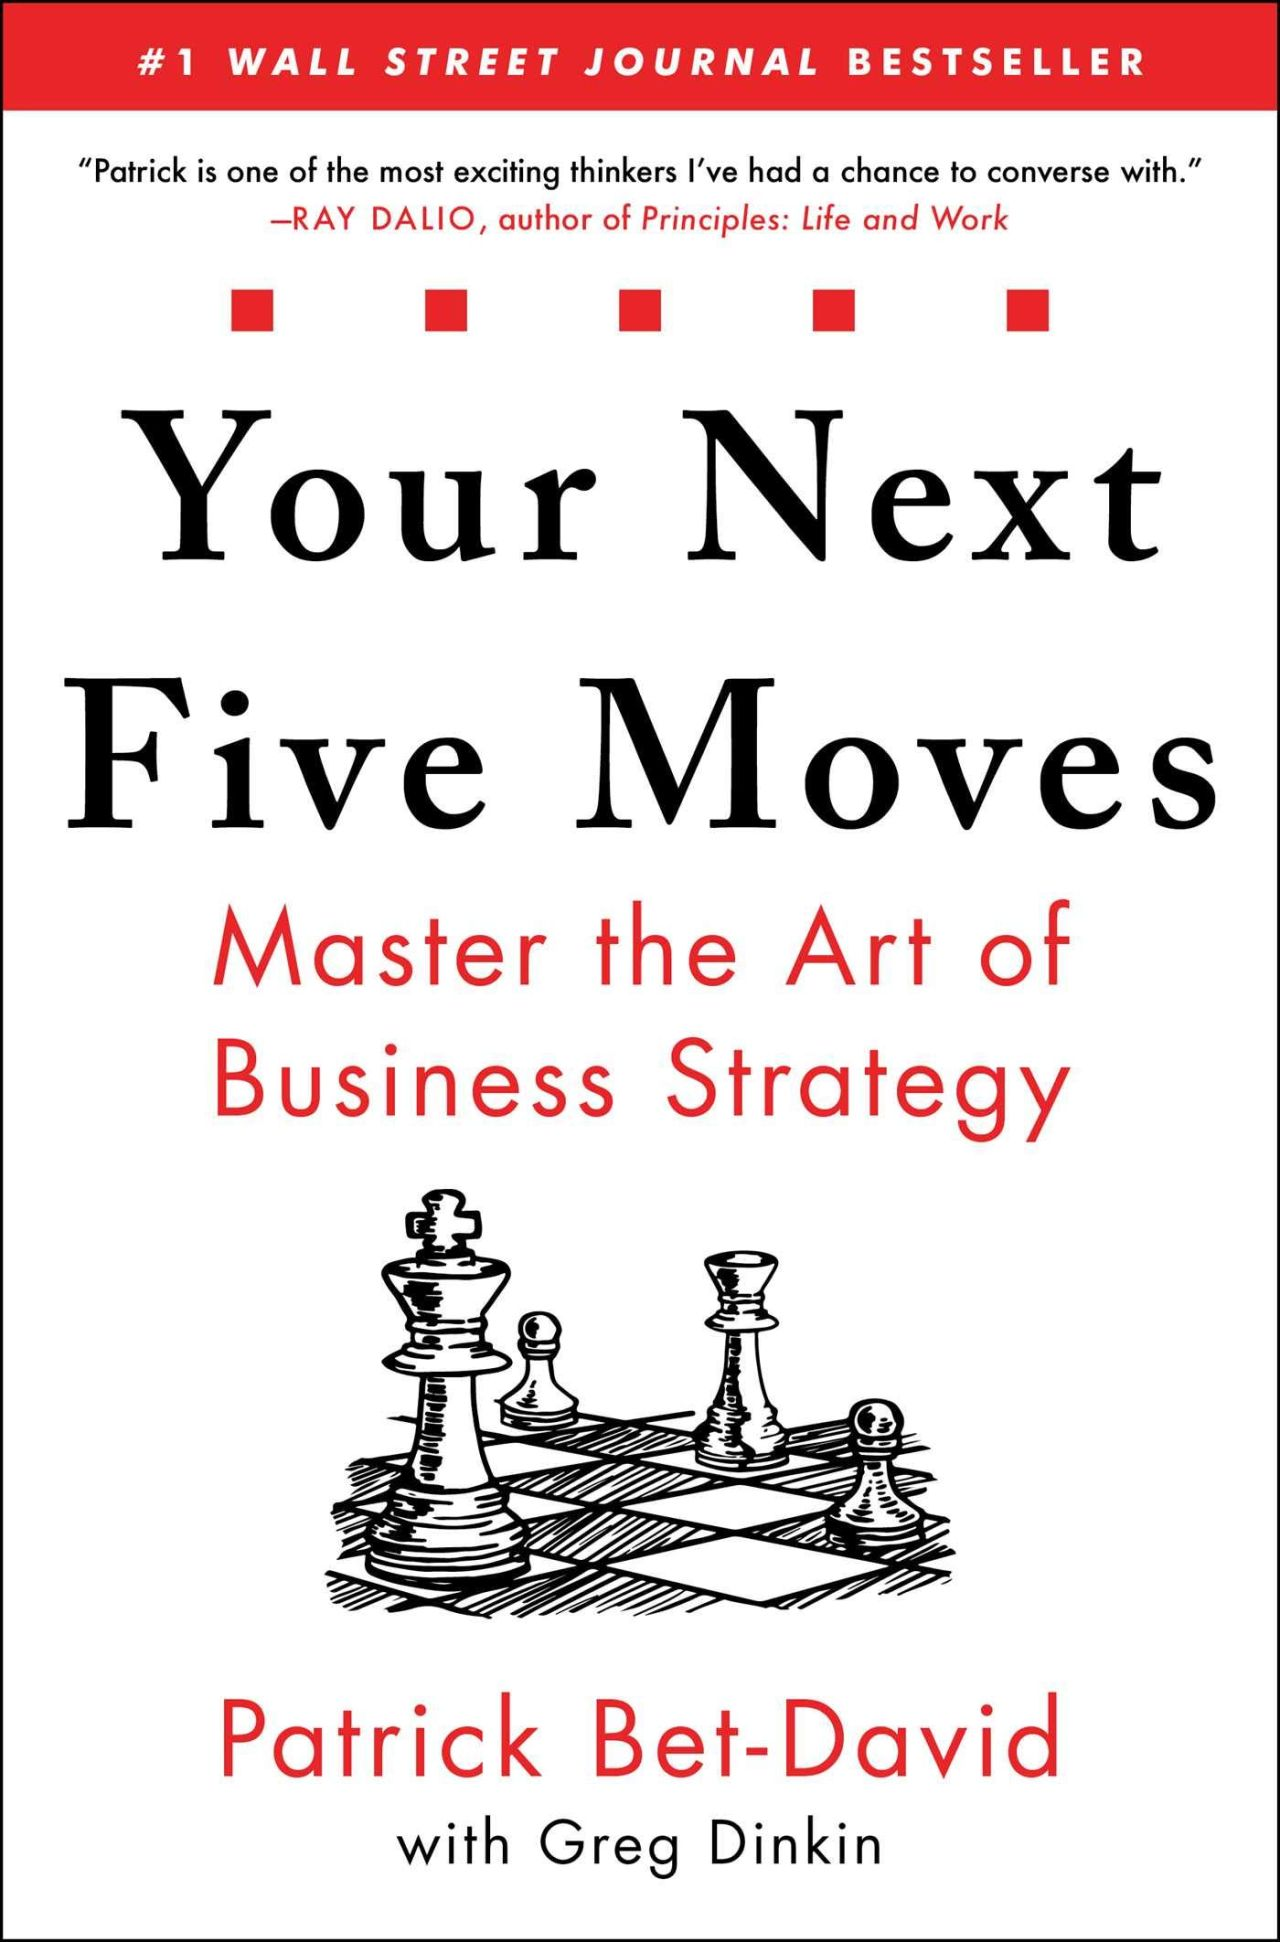 Your Next Five Moves by Patrick Bet-David